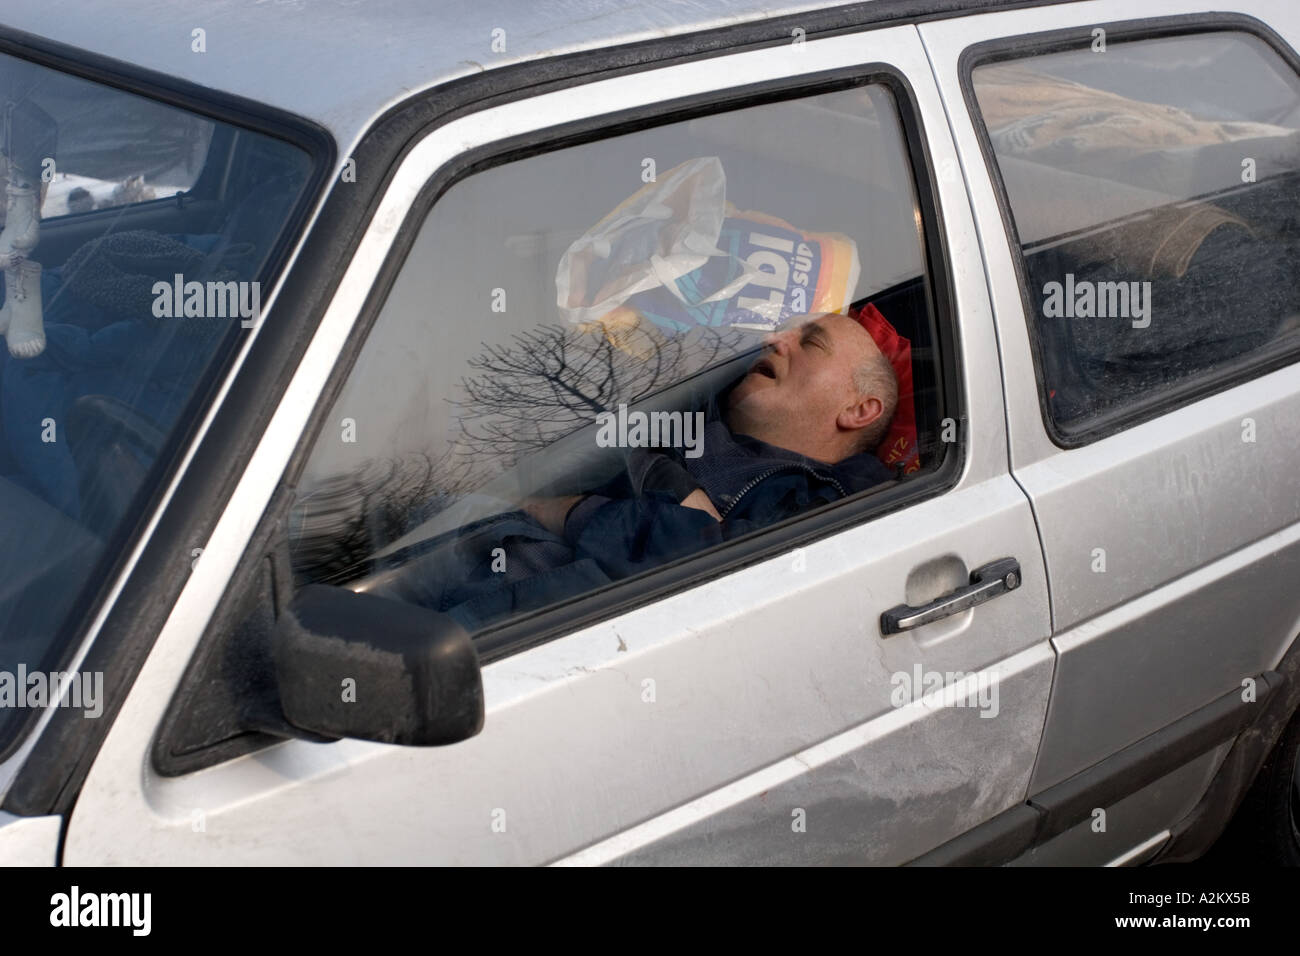 Sleeping In Car >> Man Sleeping In Car In A Rest Area Along The Autobahn In Germany